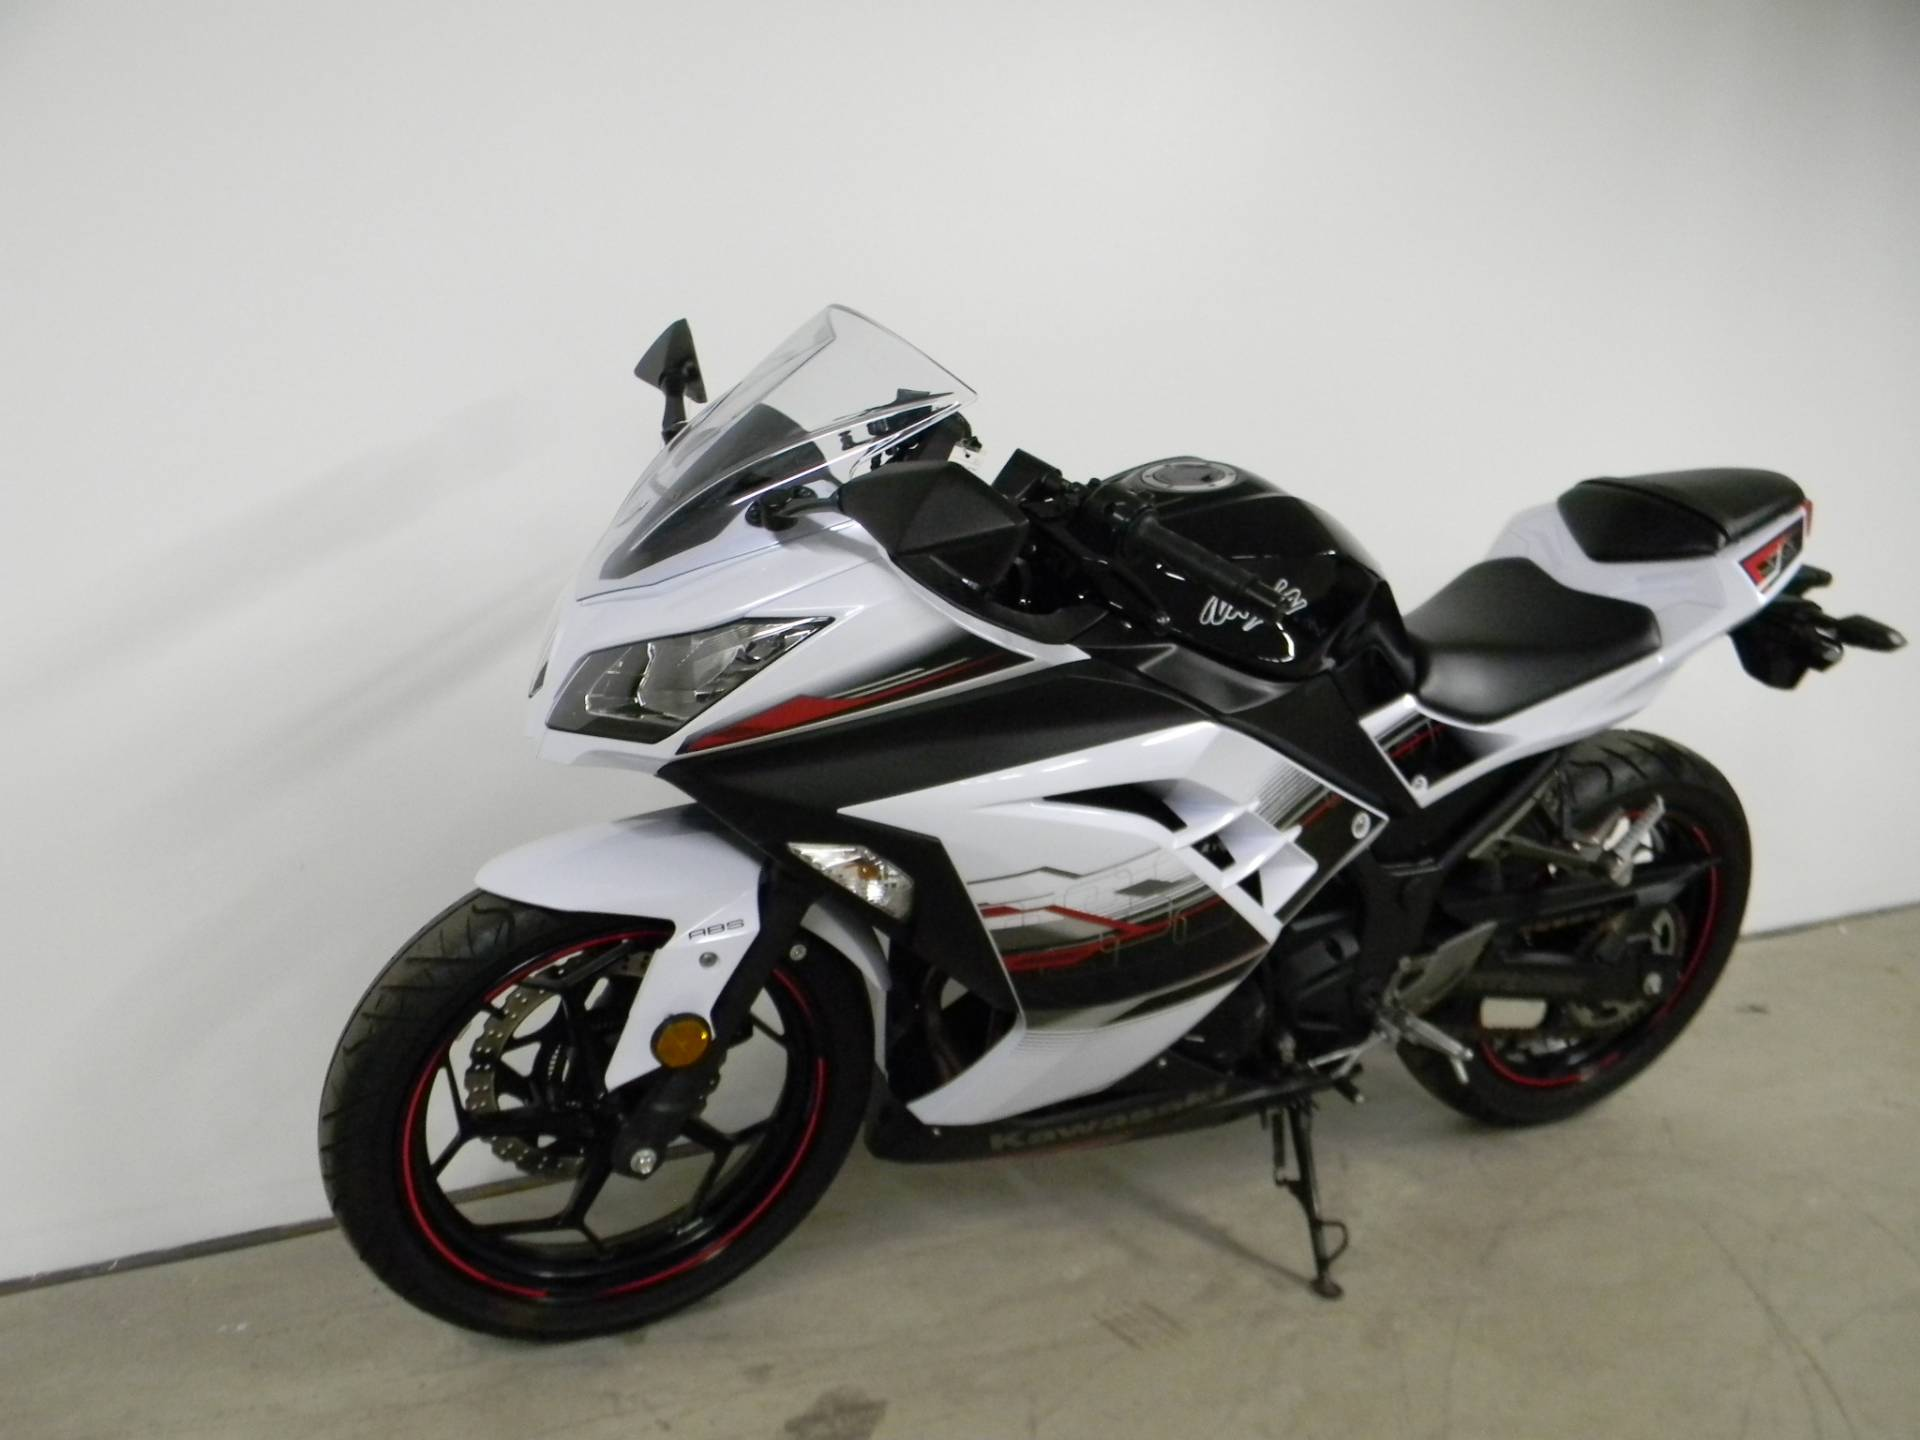 2014 Kawasaki Ninja® 300 SE in Springfield, Massachusetts - Photo 4